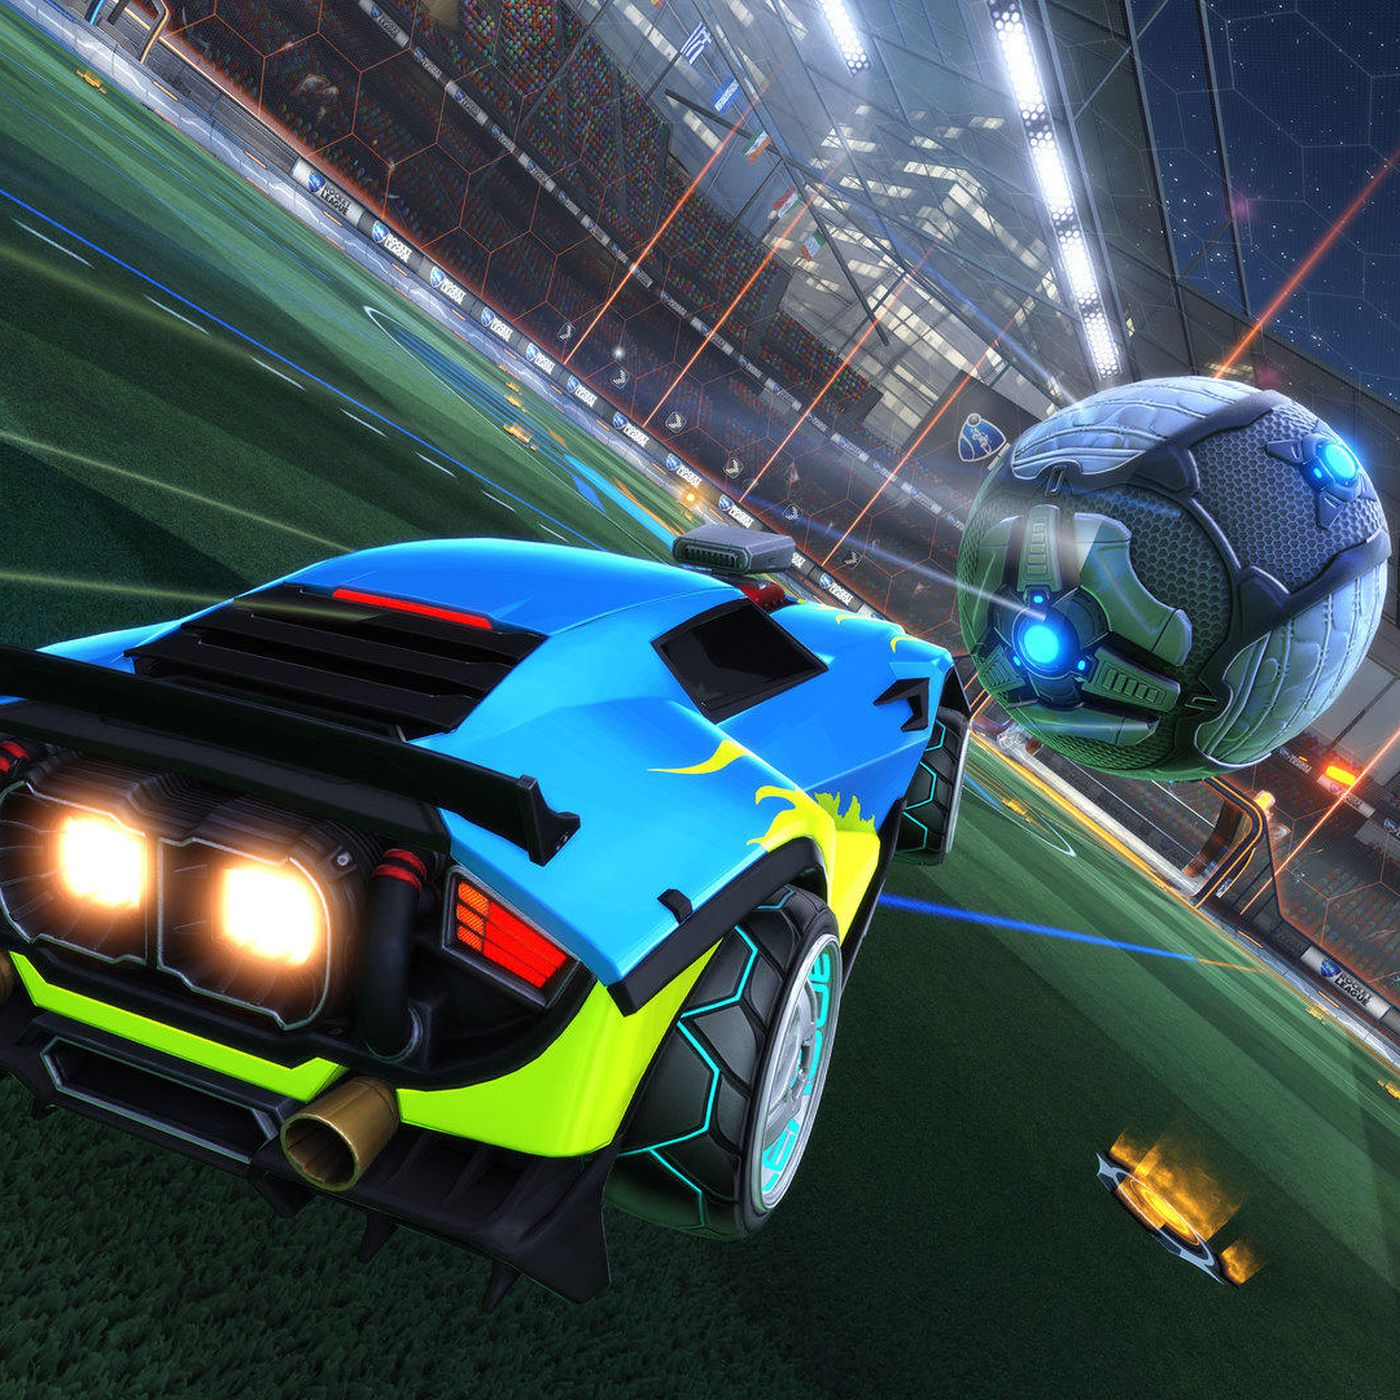 Epic S Rocket League Acquisition Made A Messy Situation Even